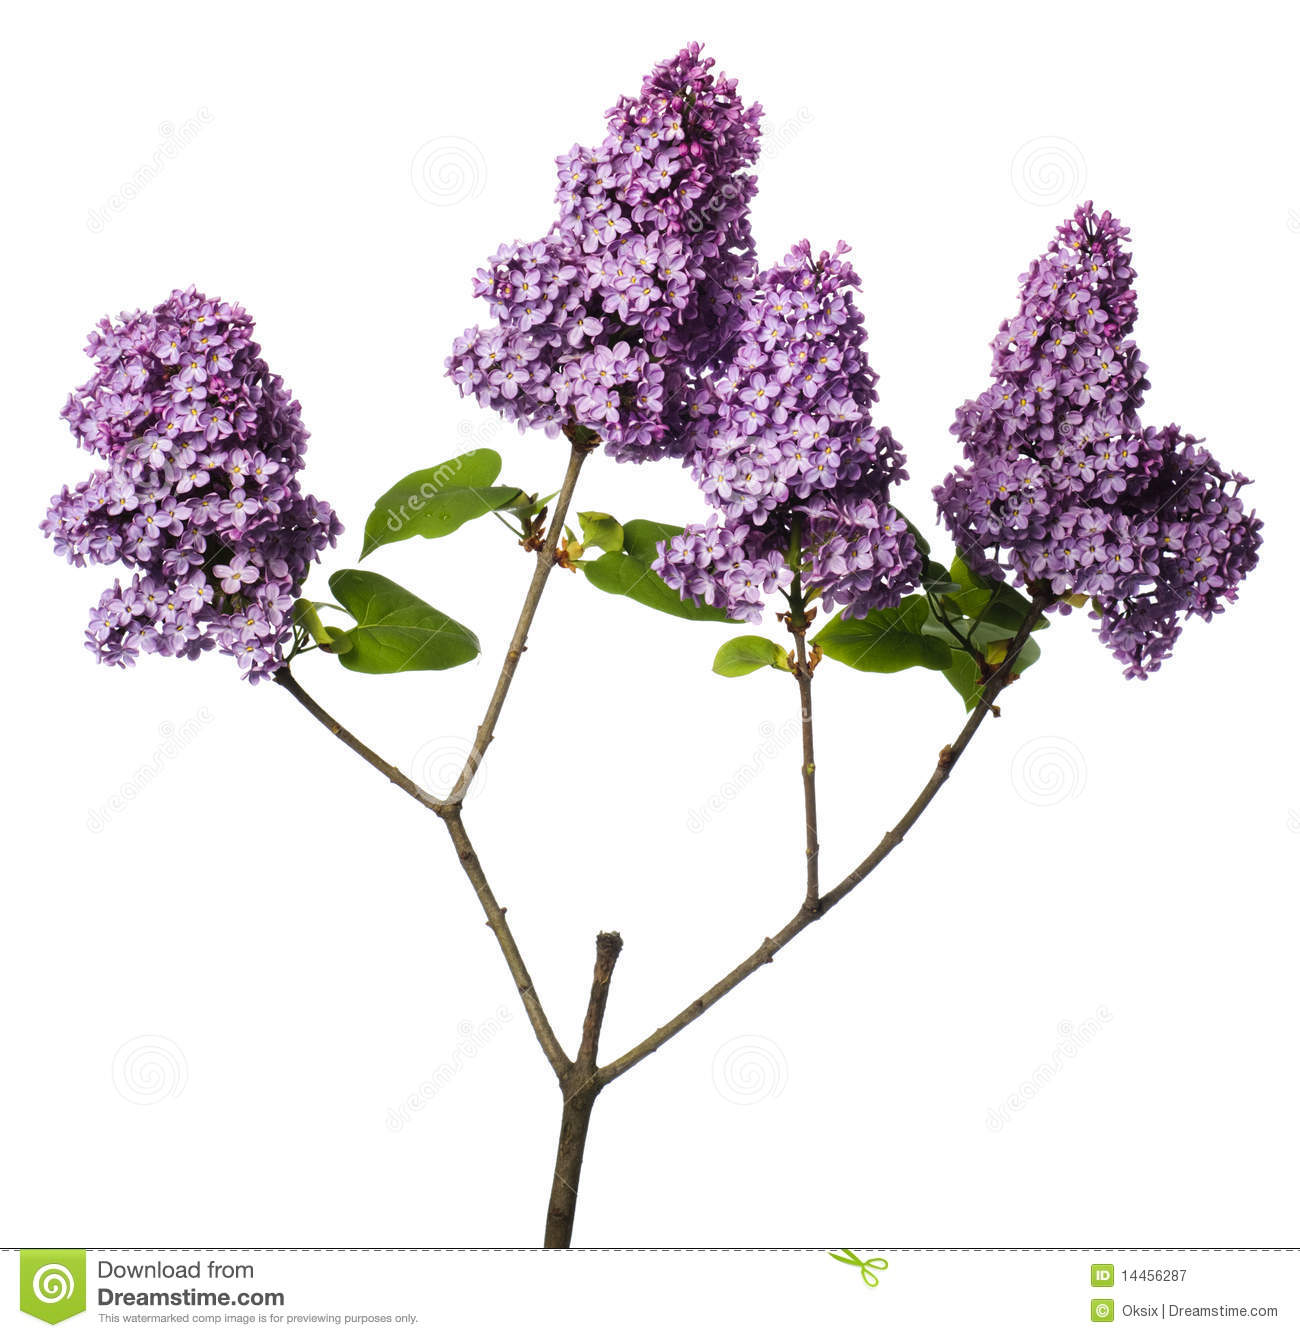 [Image: lilac-branch-isolated-white-14456287.jpg]